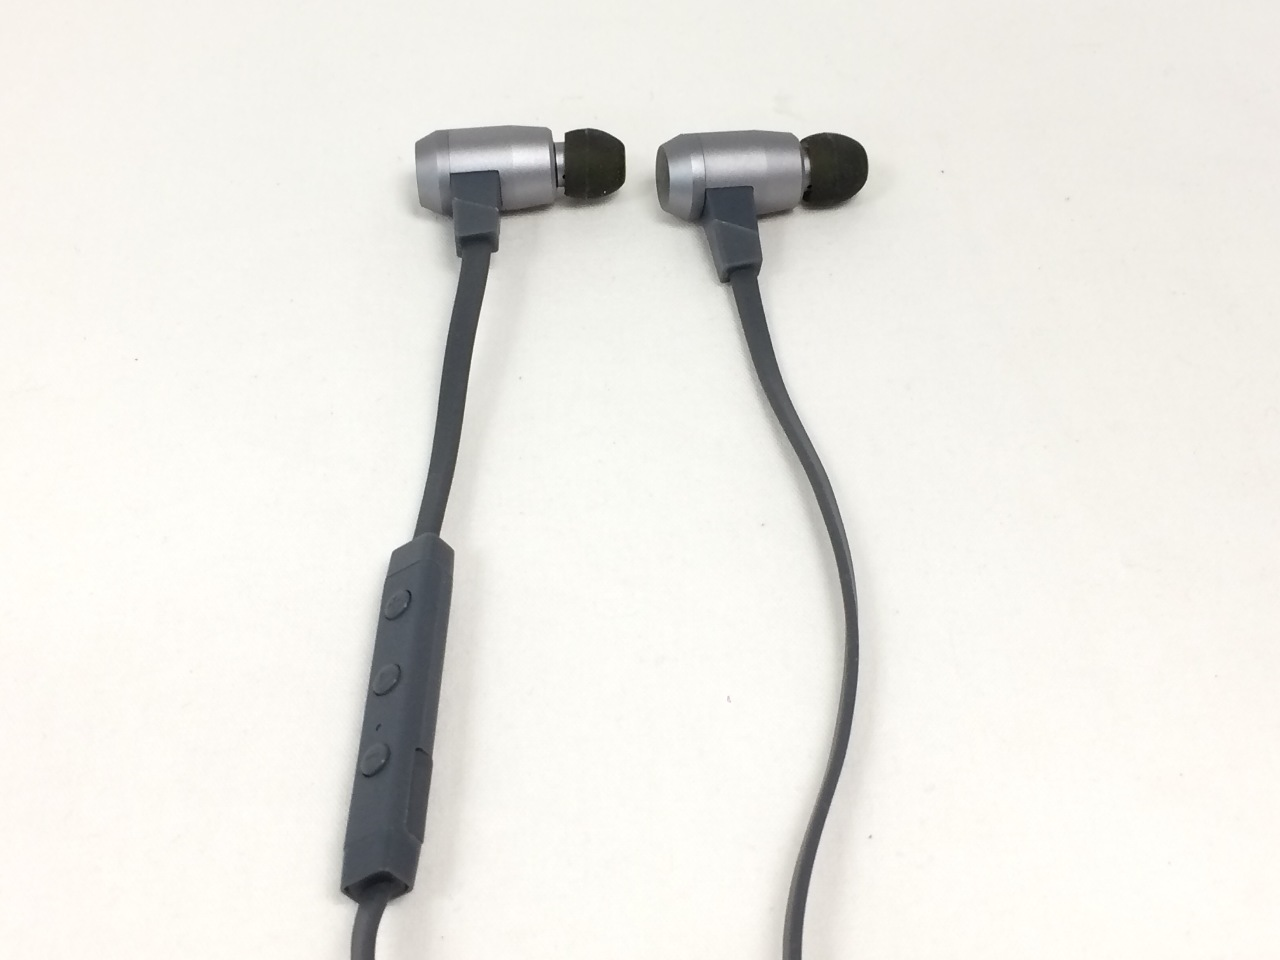 NuForce BE6i Wireless Bluetooth Headphones with aptX, AAC and Long Battery,  Grey